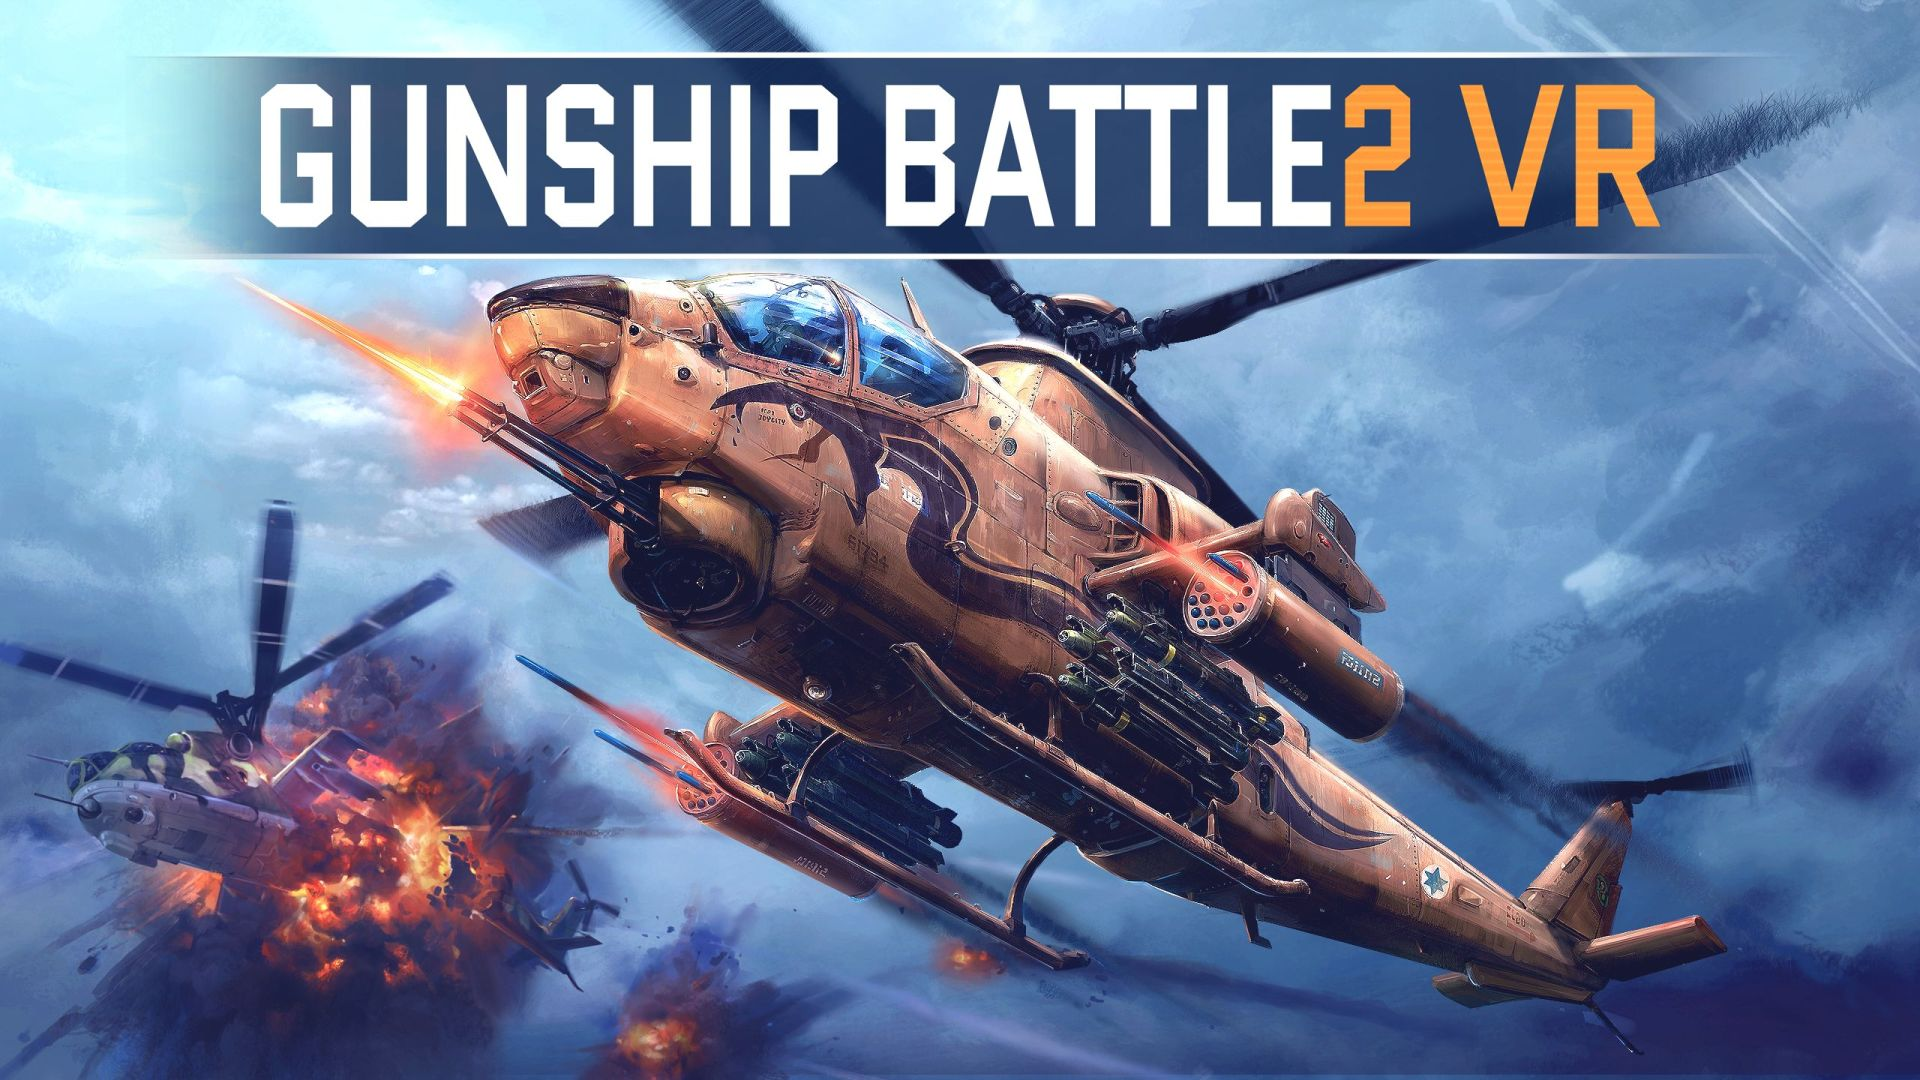 Gunship Battle 2 VR